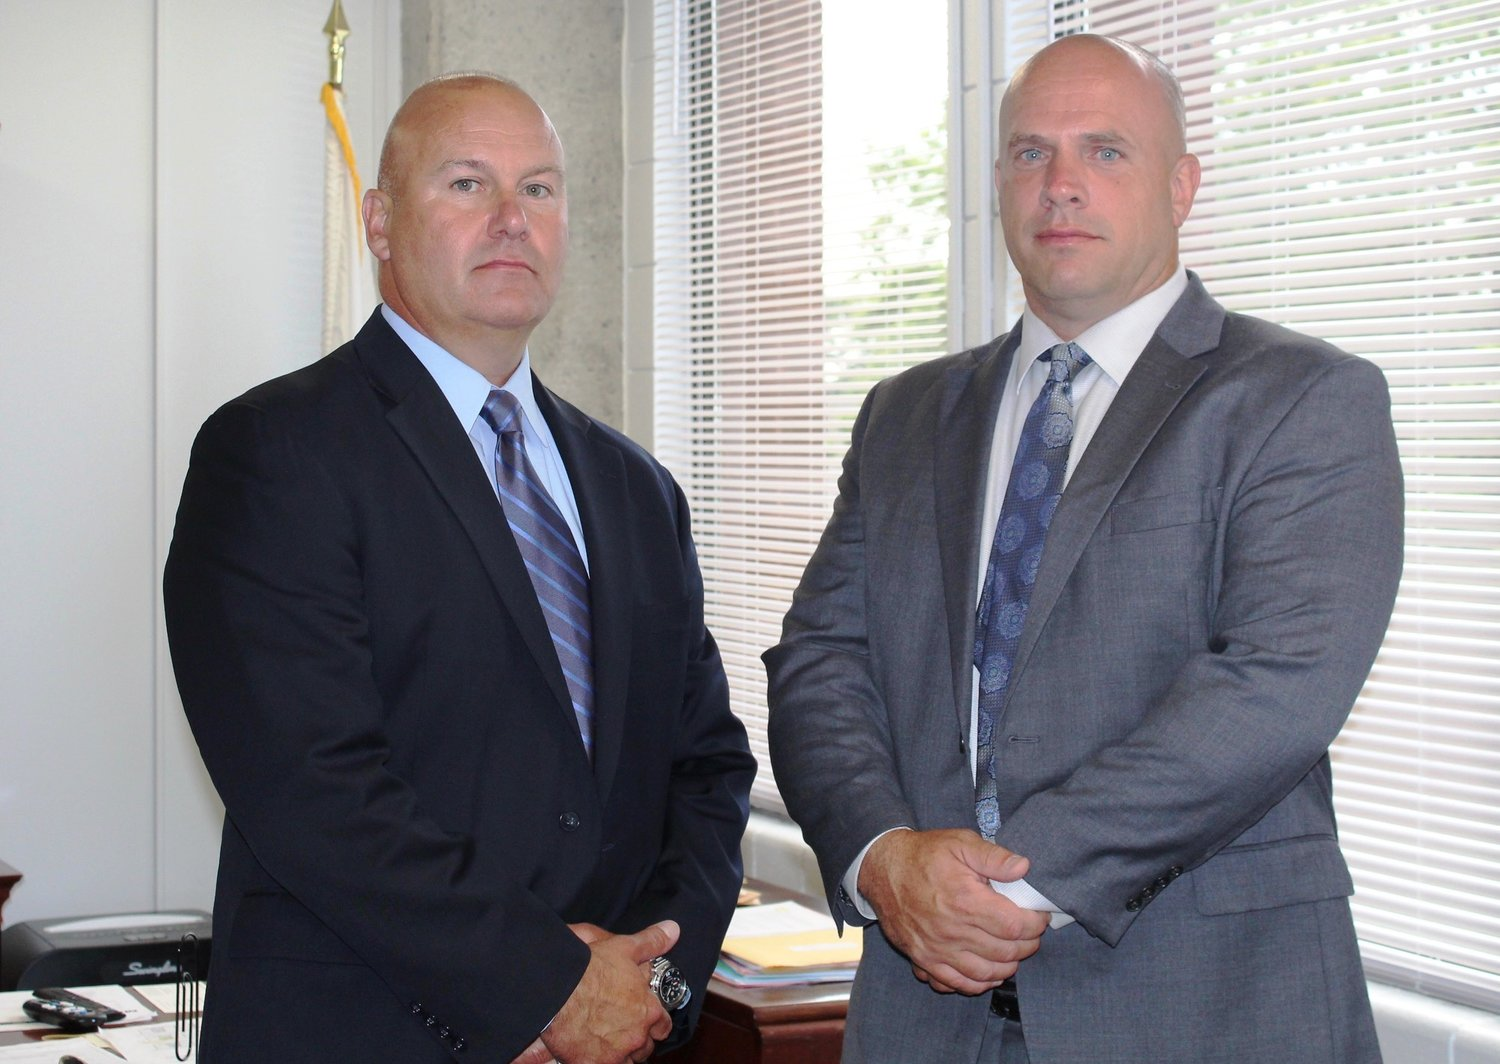 L to R new EP Police Officers William Demers and Stephen Burns